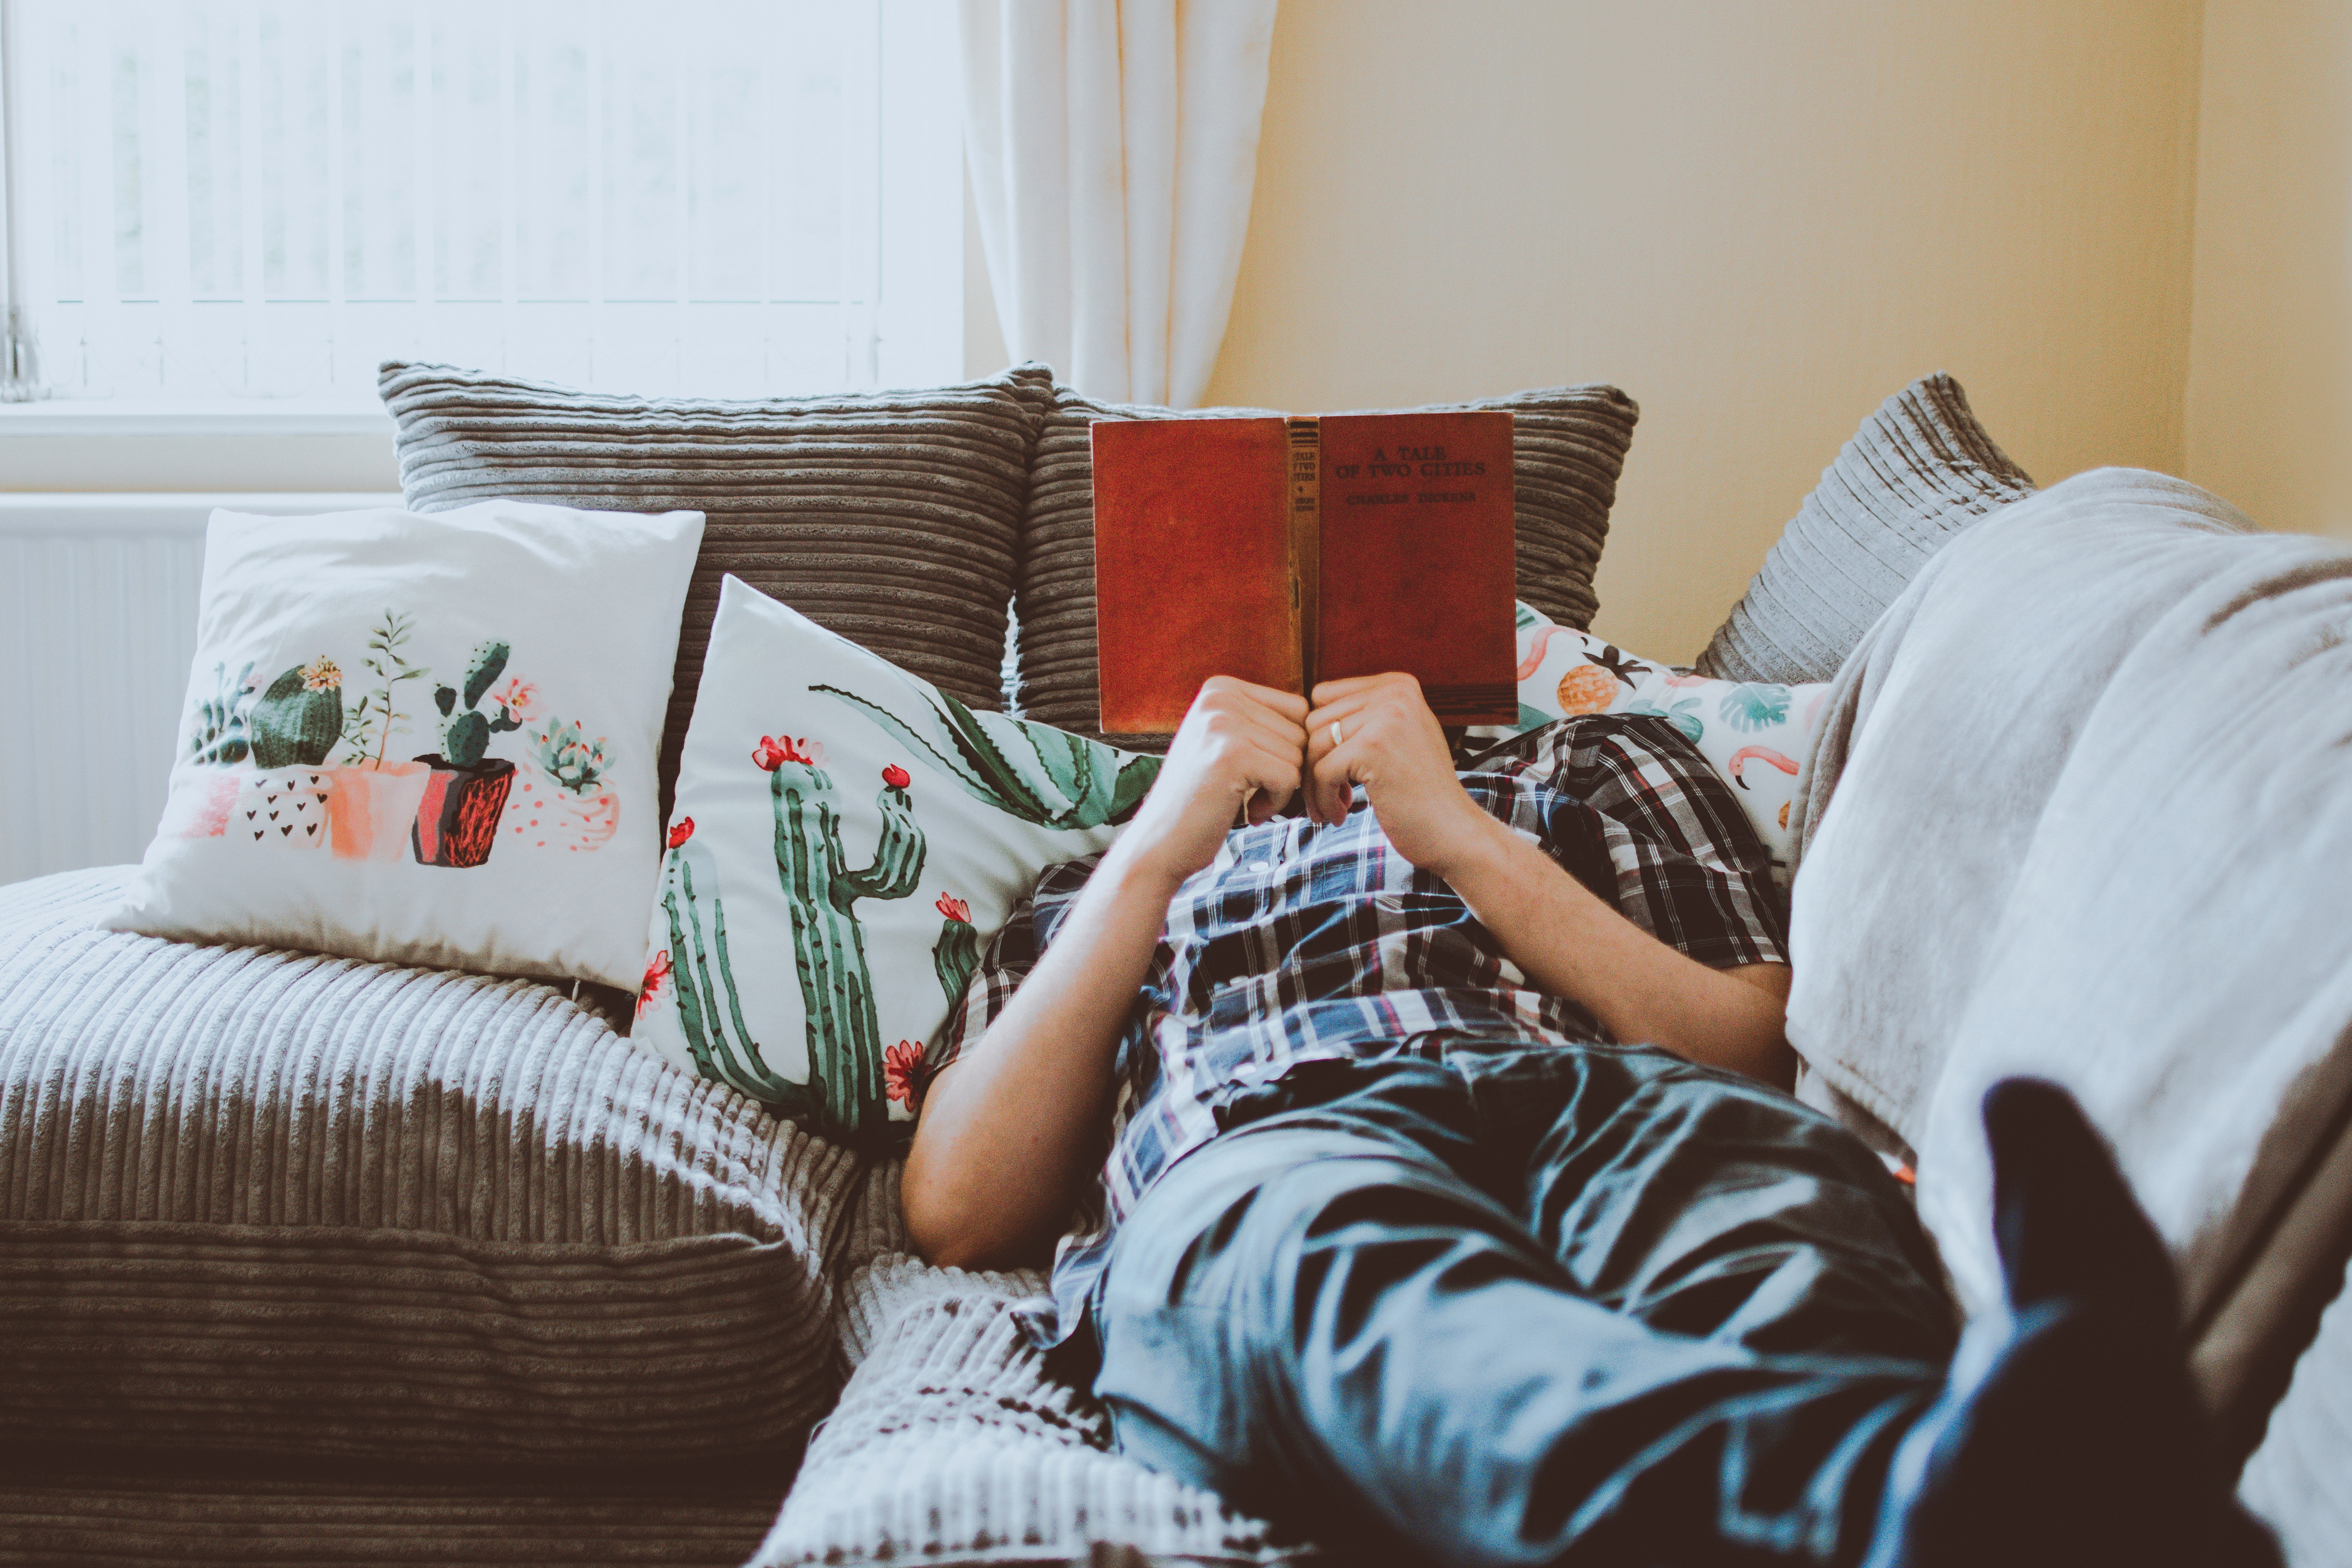 Man reading on couch